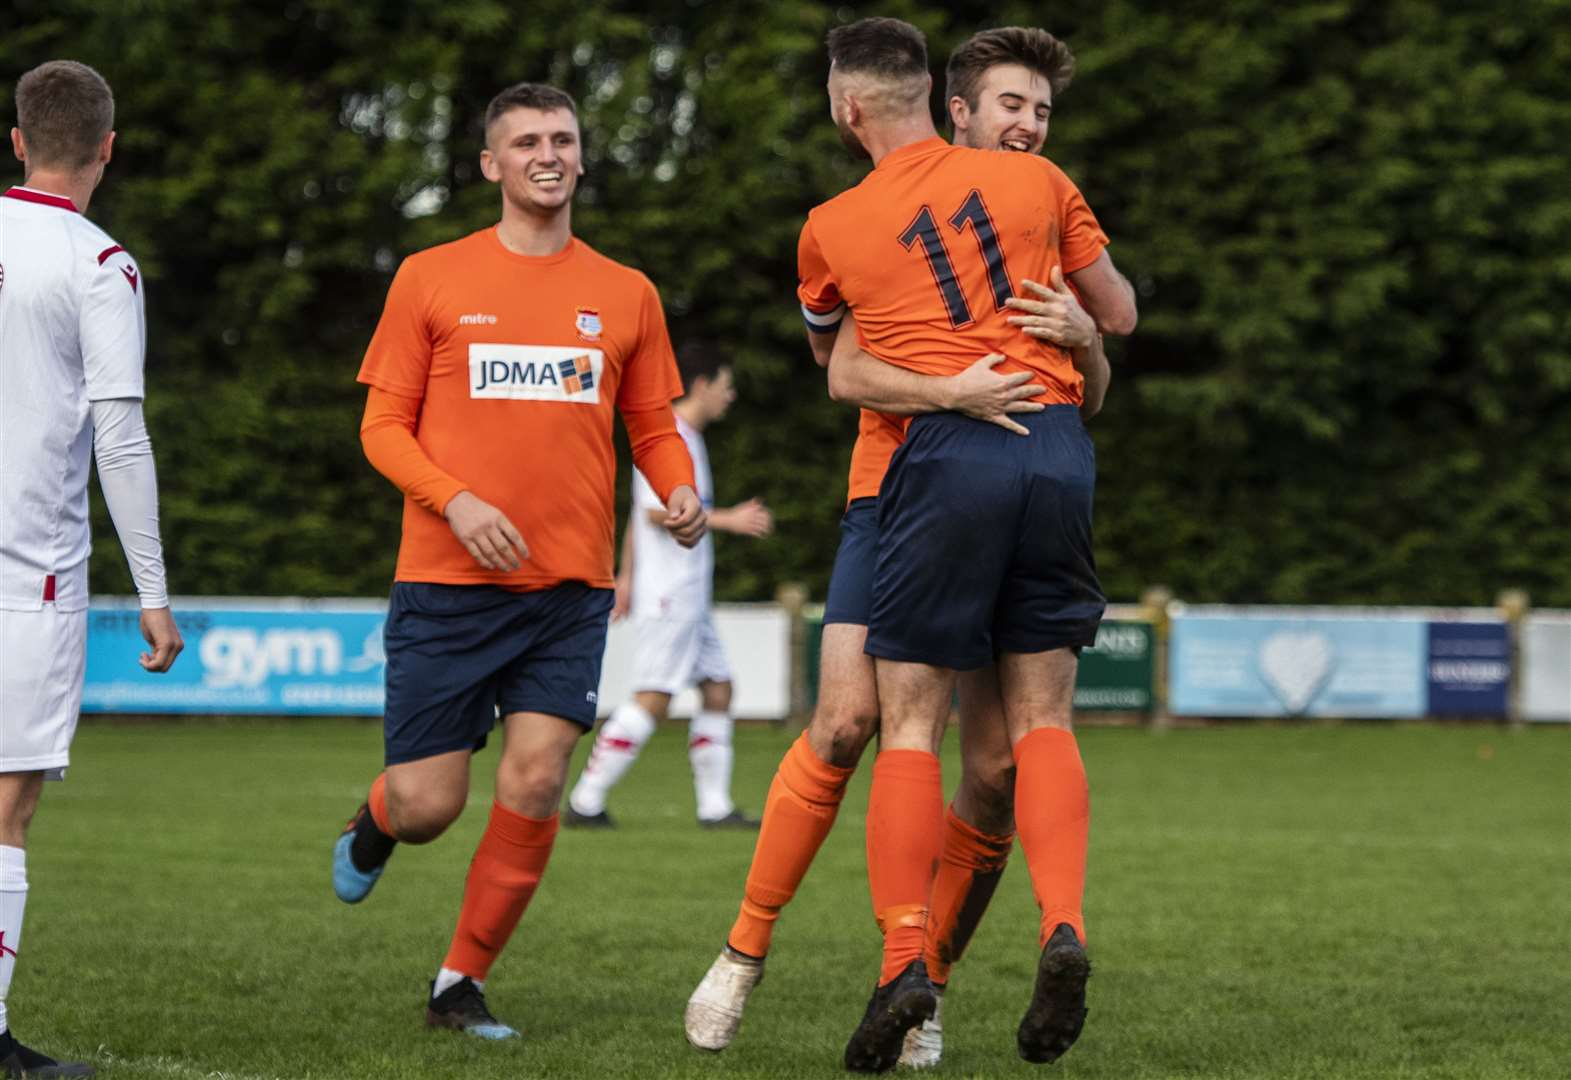 Diss return to winning ways